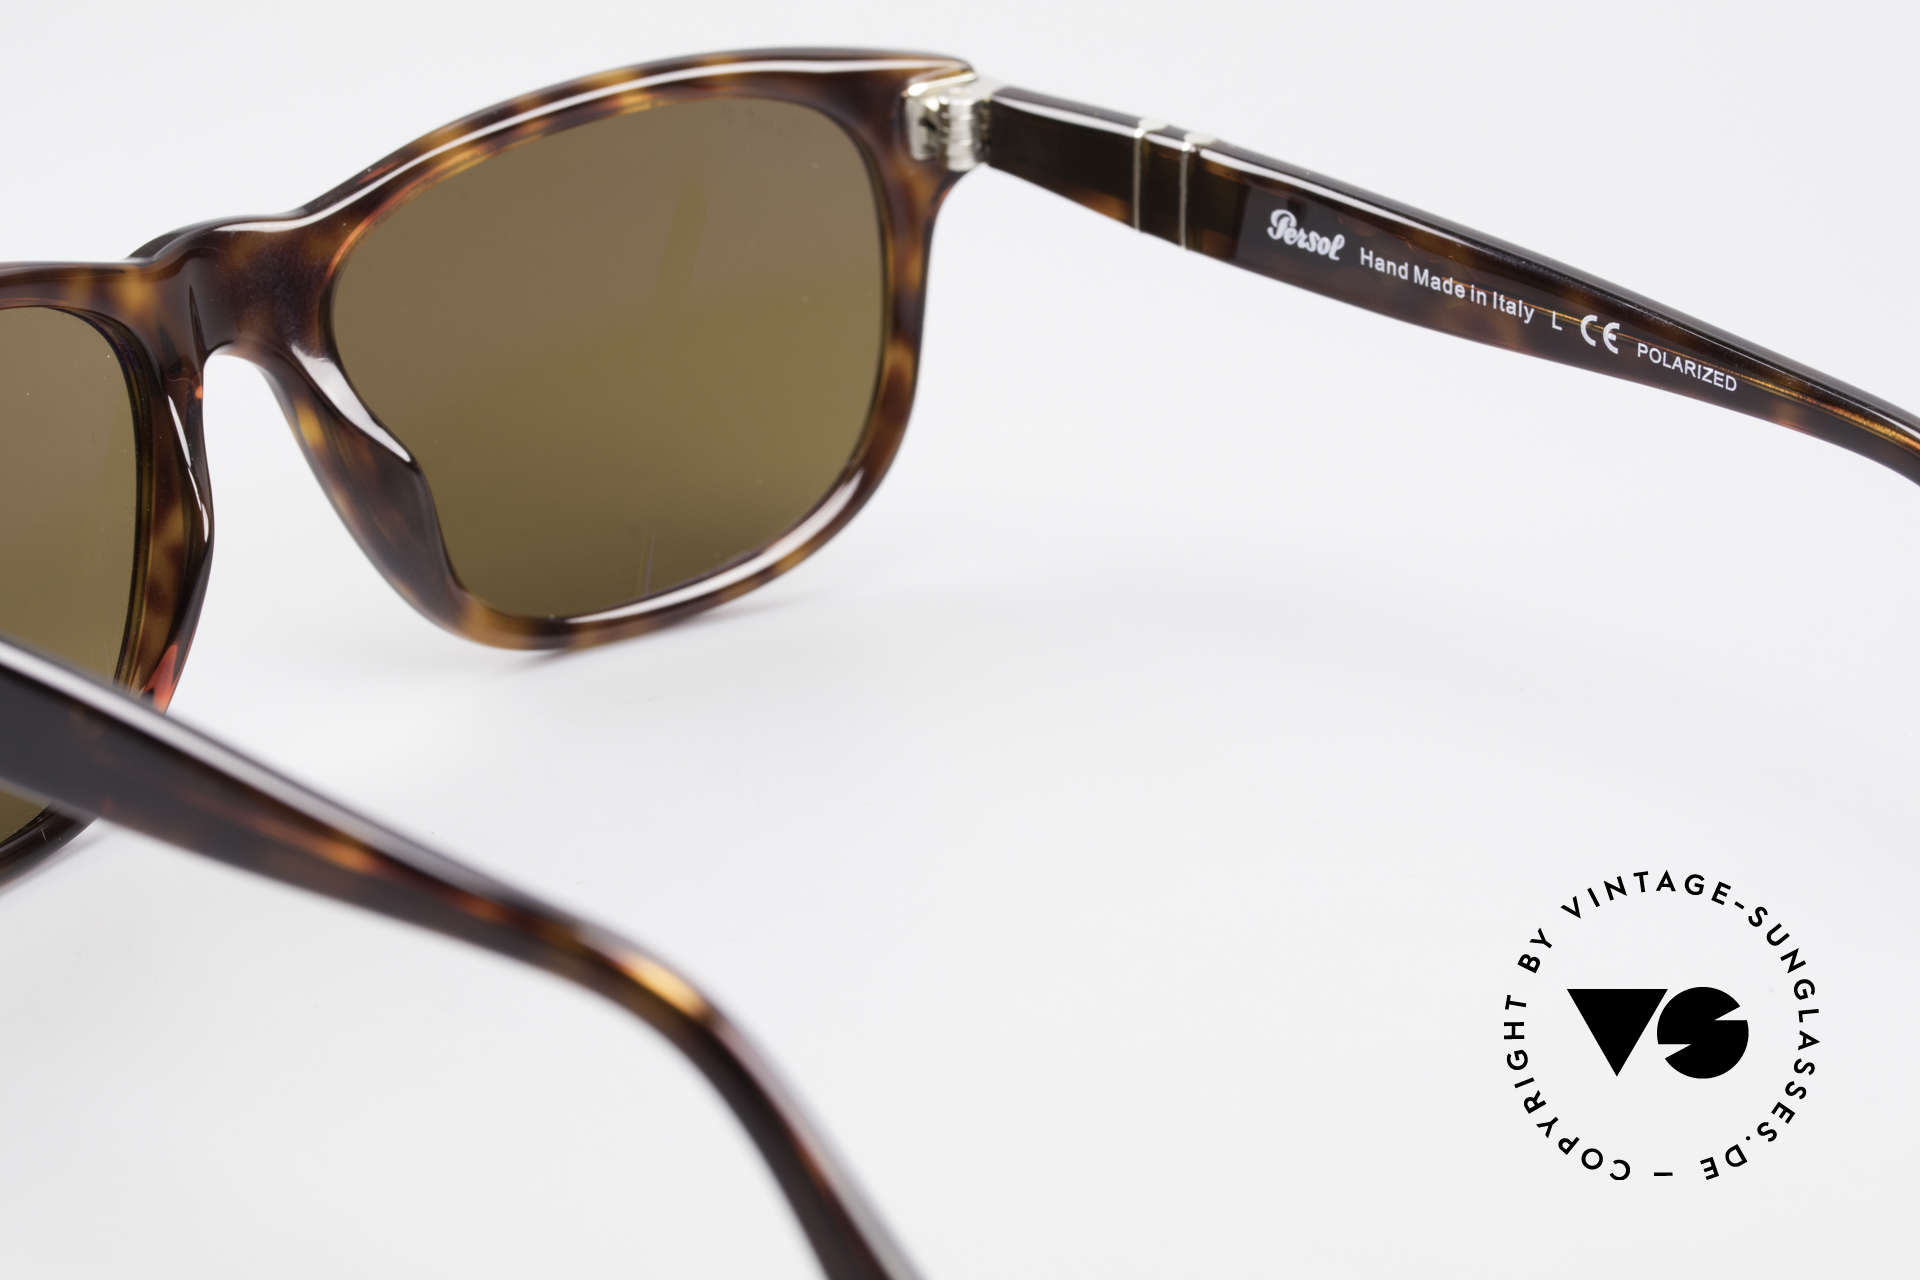 Persol 2989 Polarized Sunglasses Vintage, sun lenses could be replaced with prescriptions, Made for Men and Women